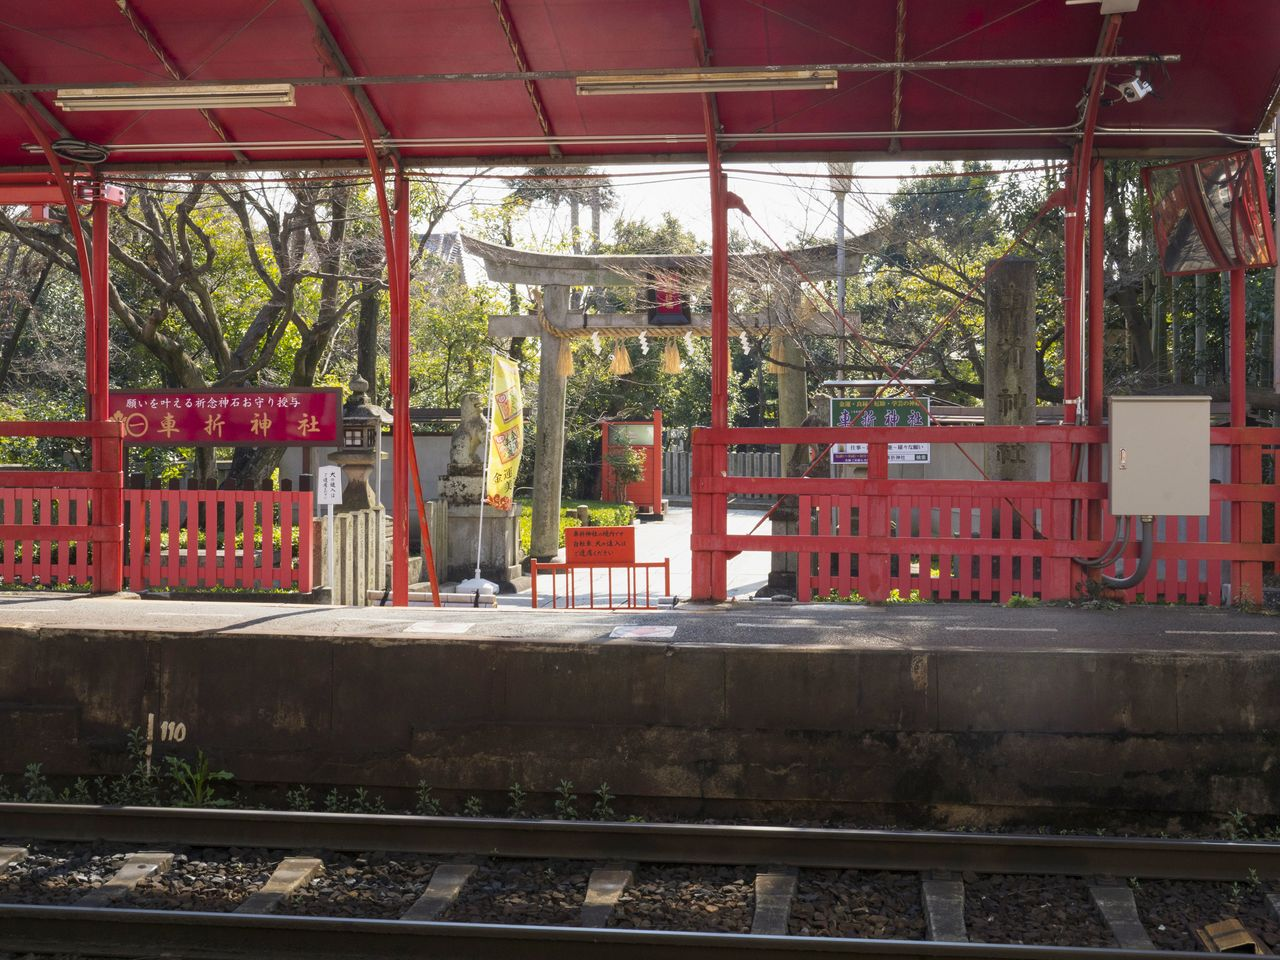 The torii at the rear approach to the shrine is visible from the platform of the Randen Kurumazaki-jinja Station.